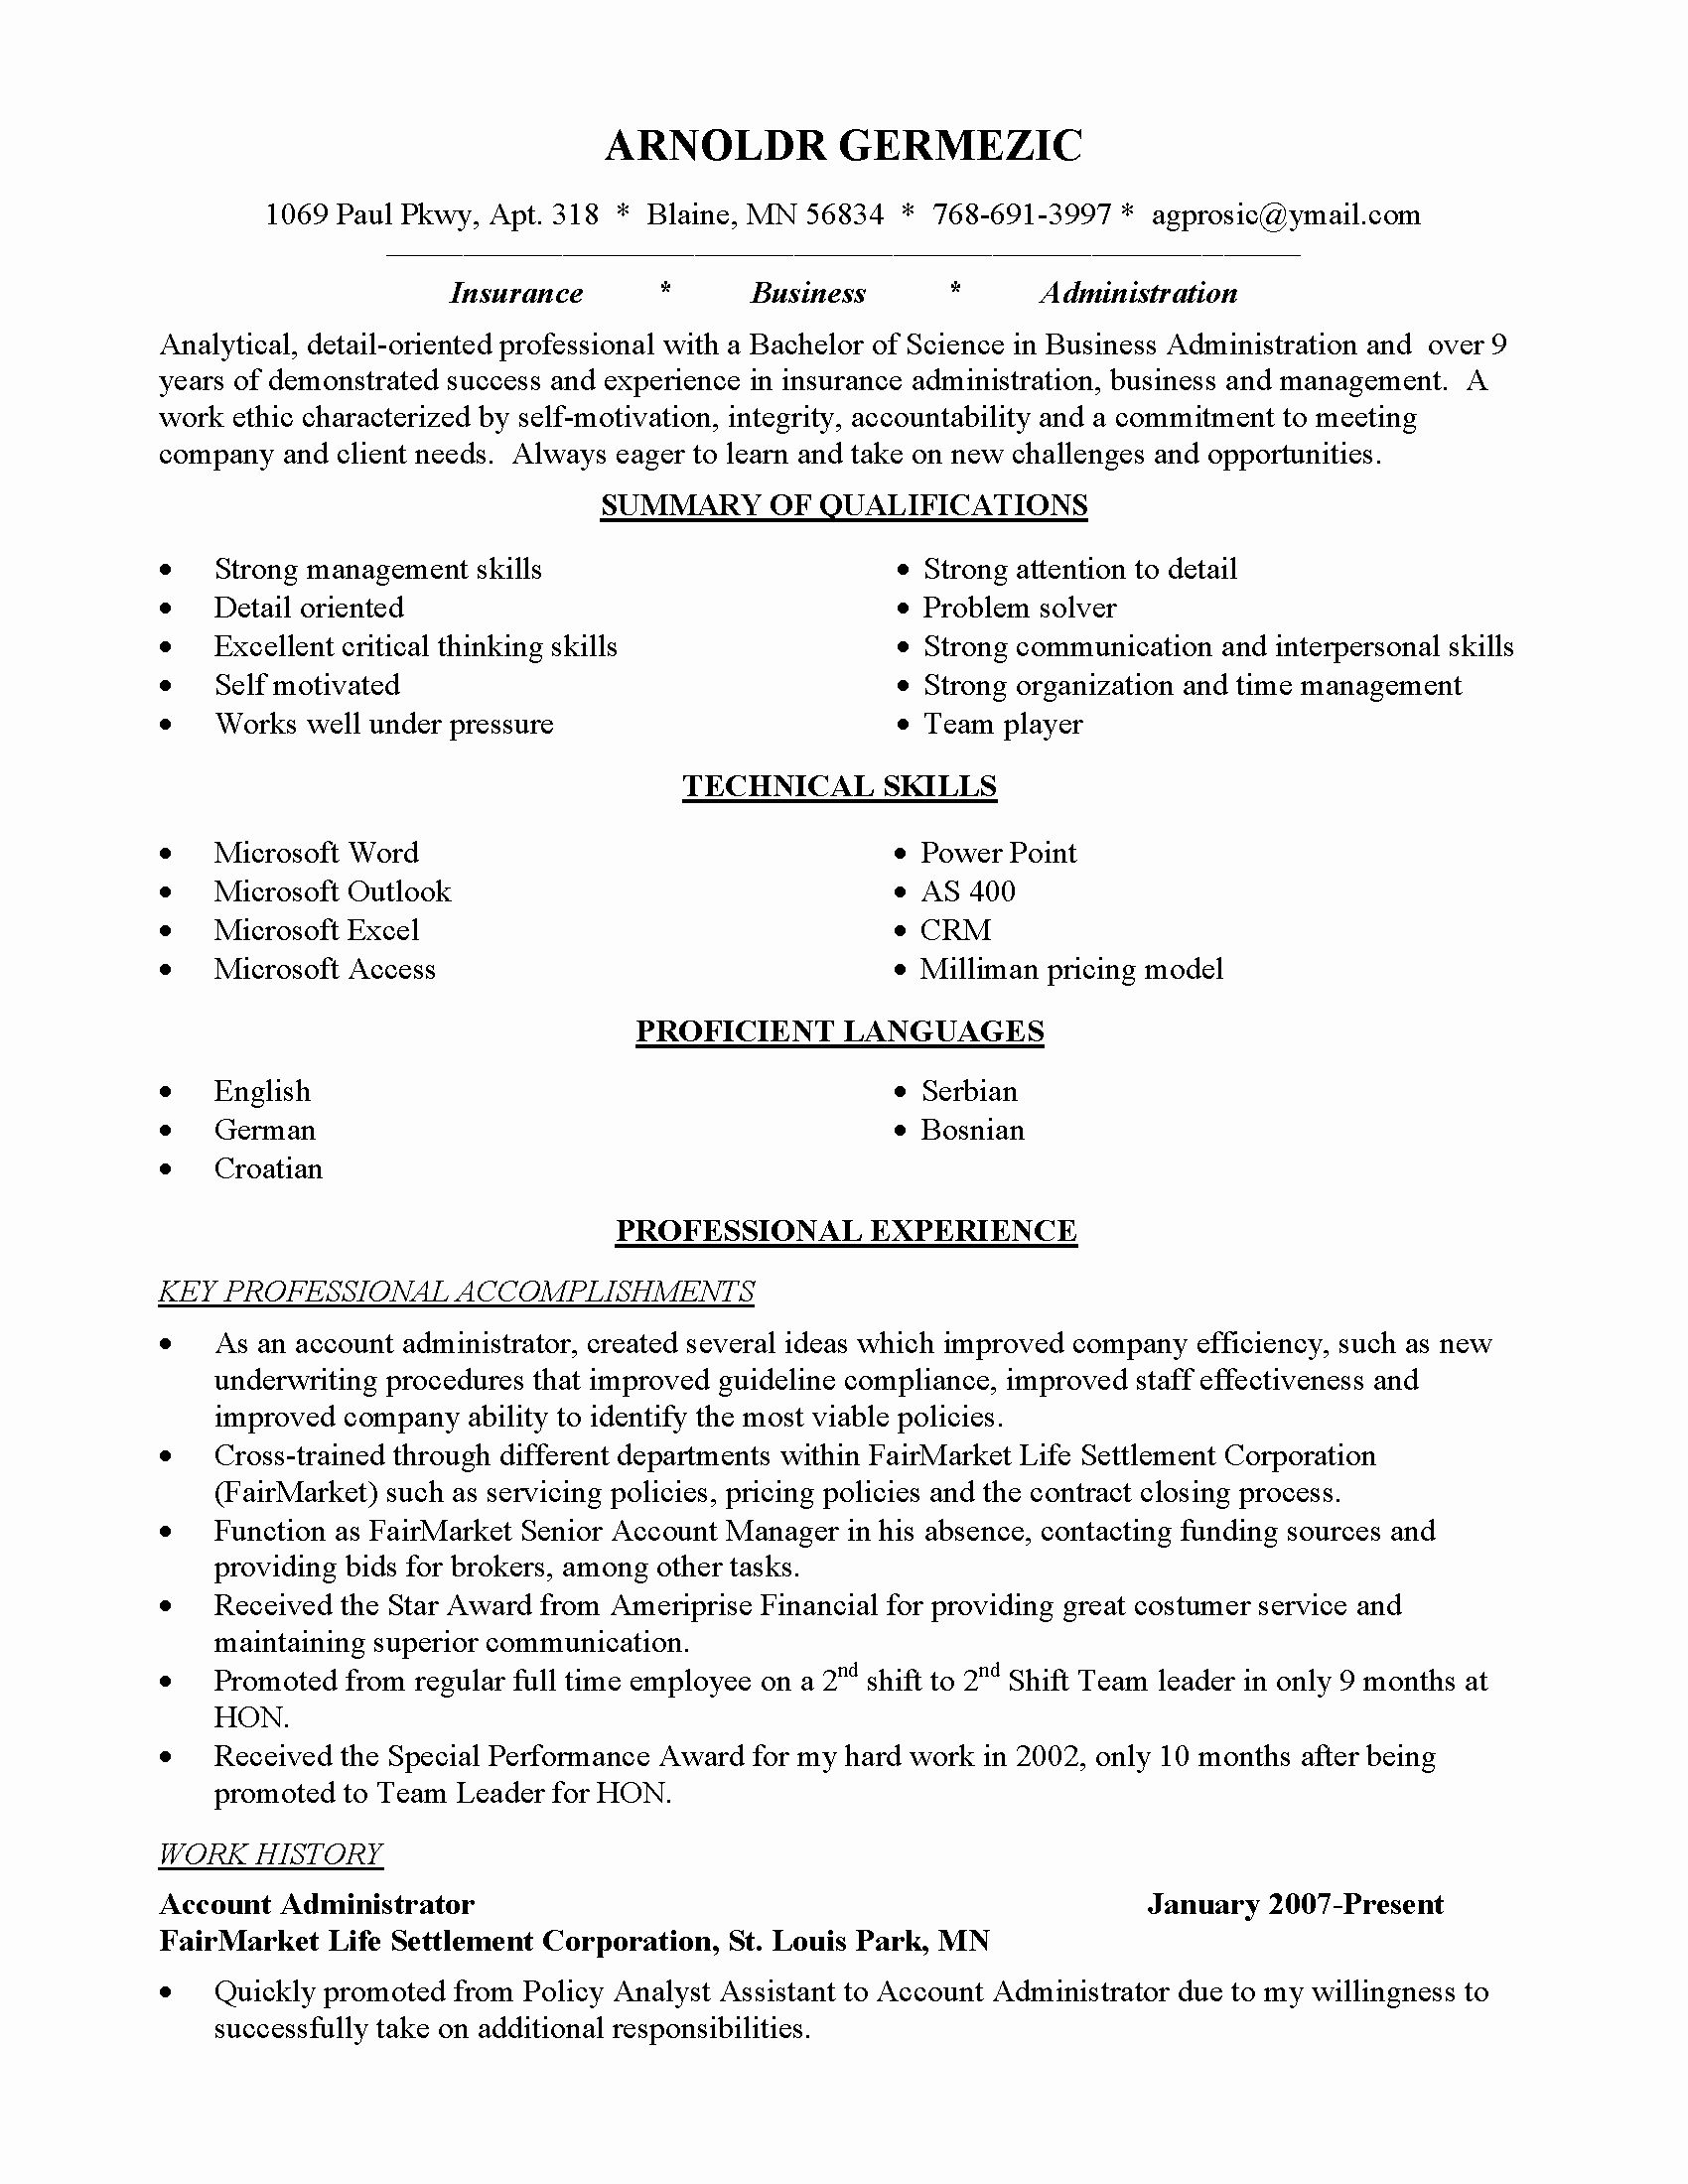 Free Resume Templates Changing Careers | job | Job resume template ...